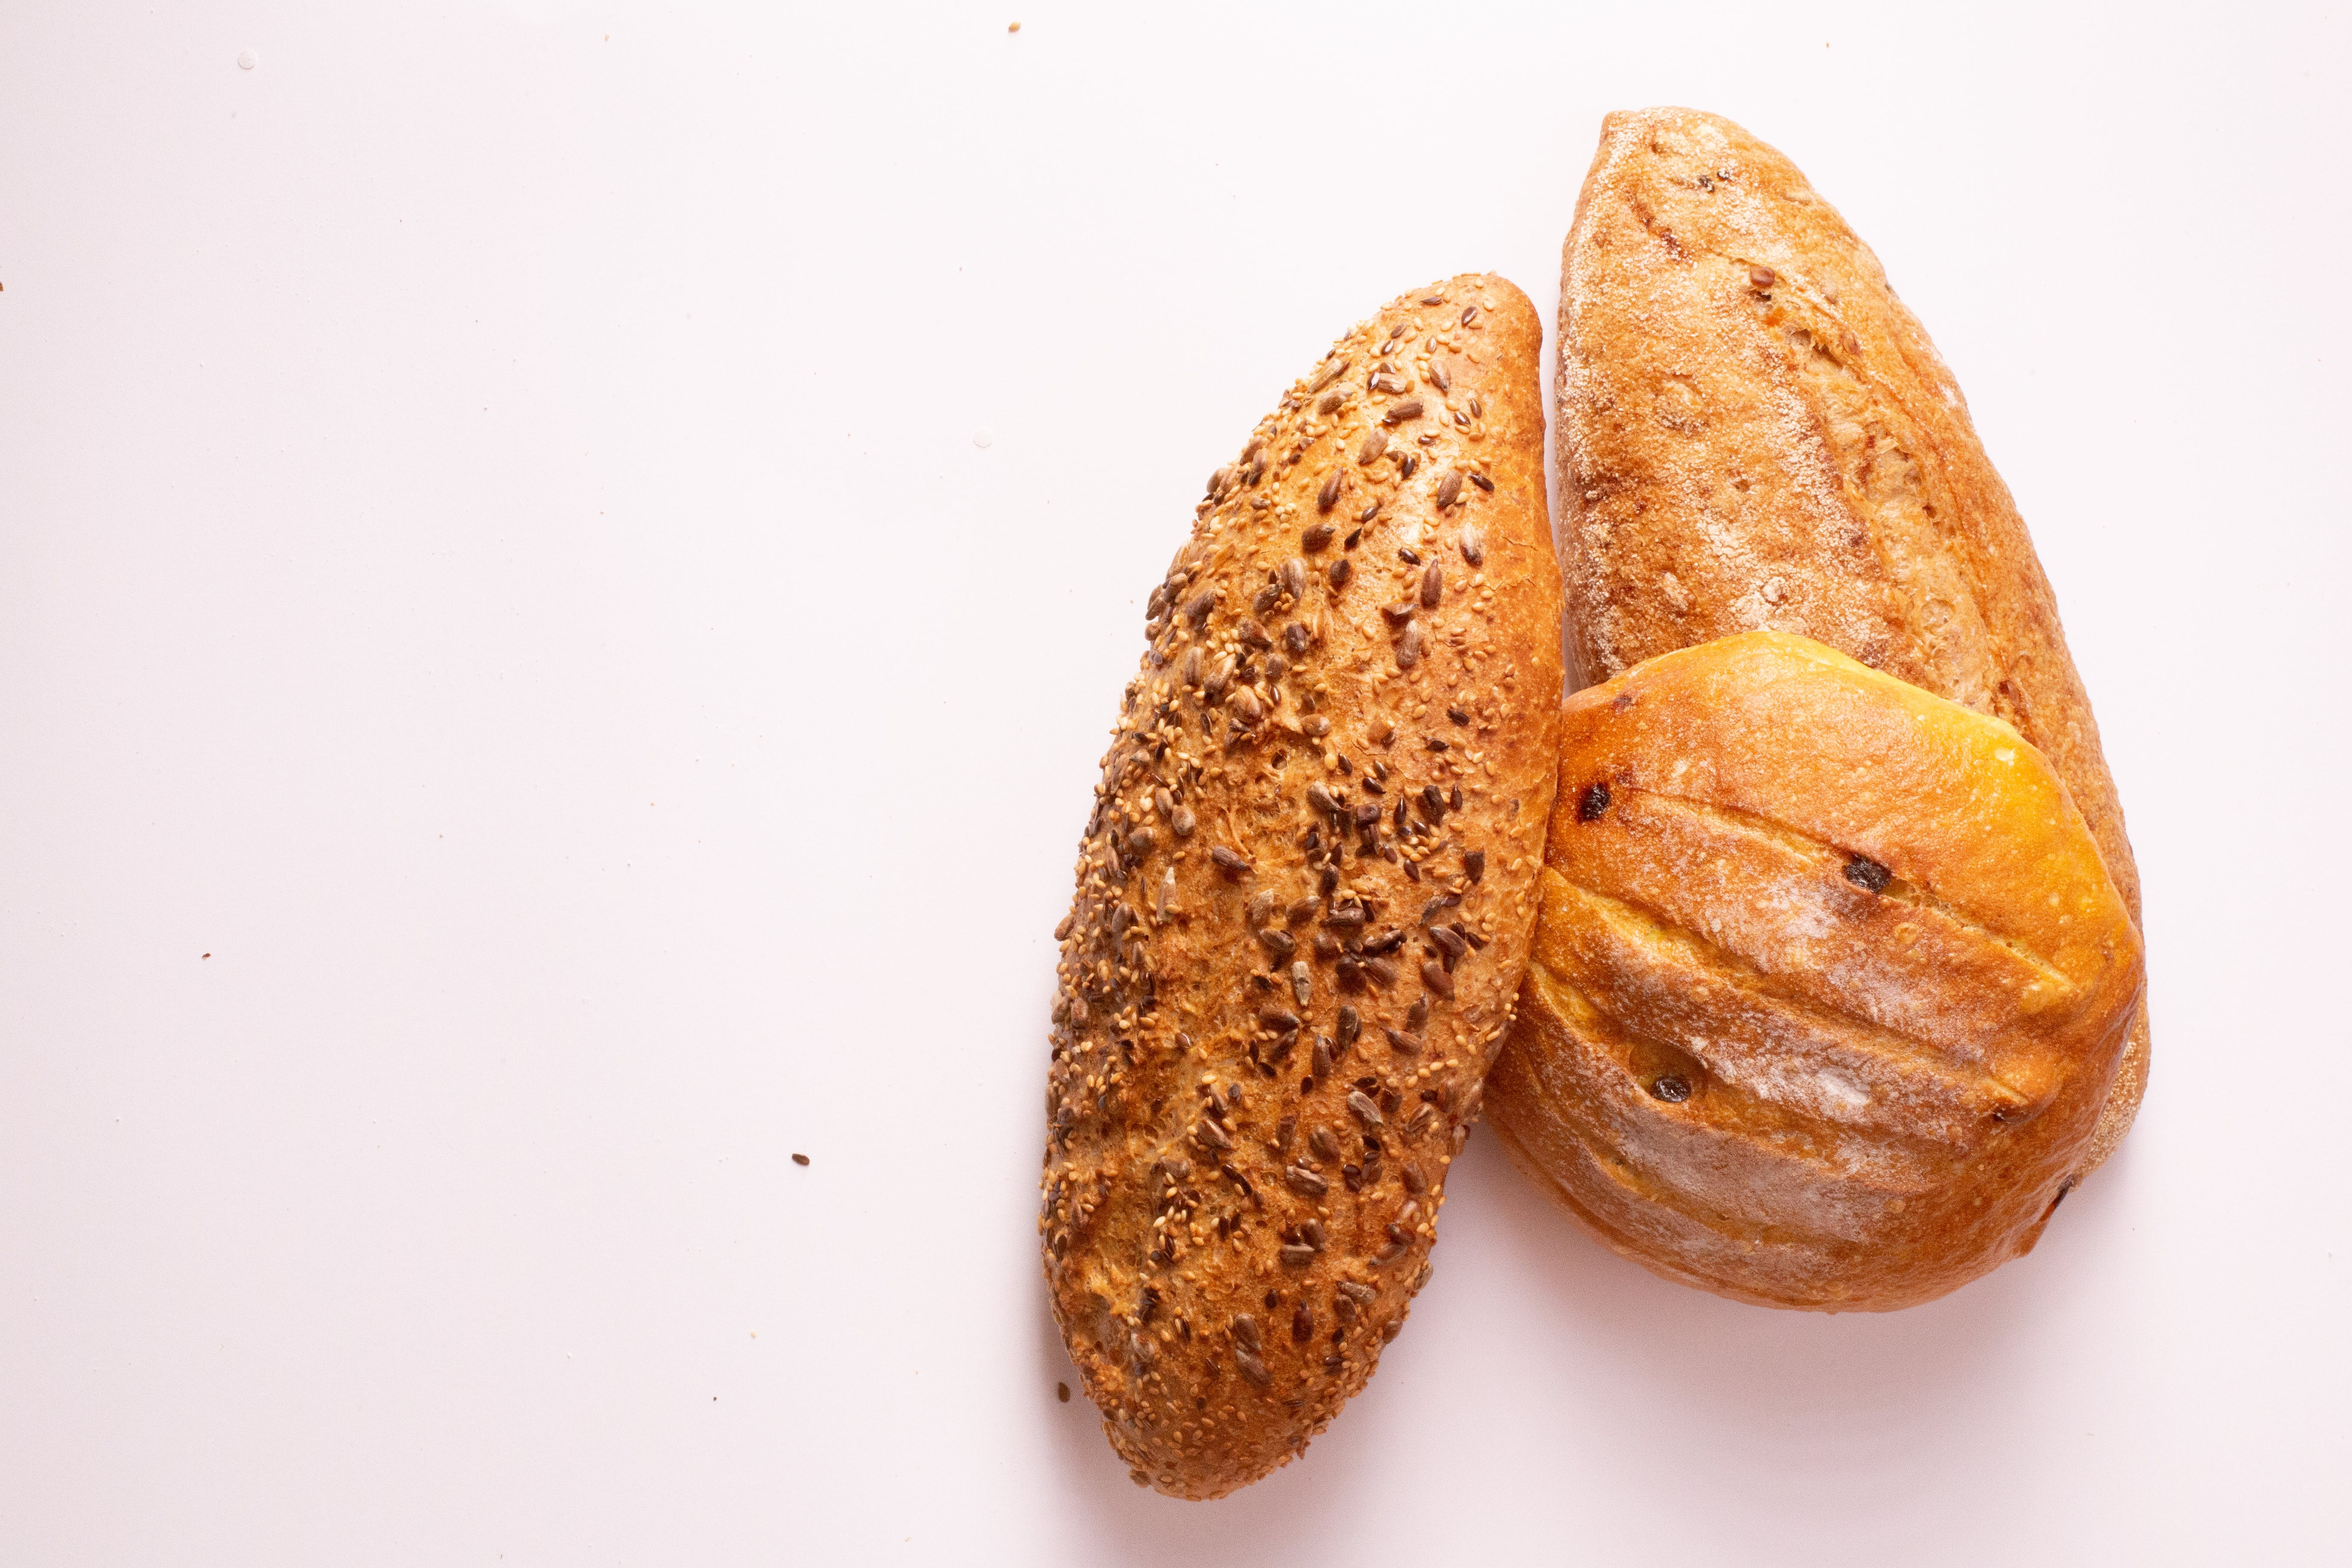 Three Breads on White Surface